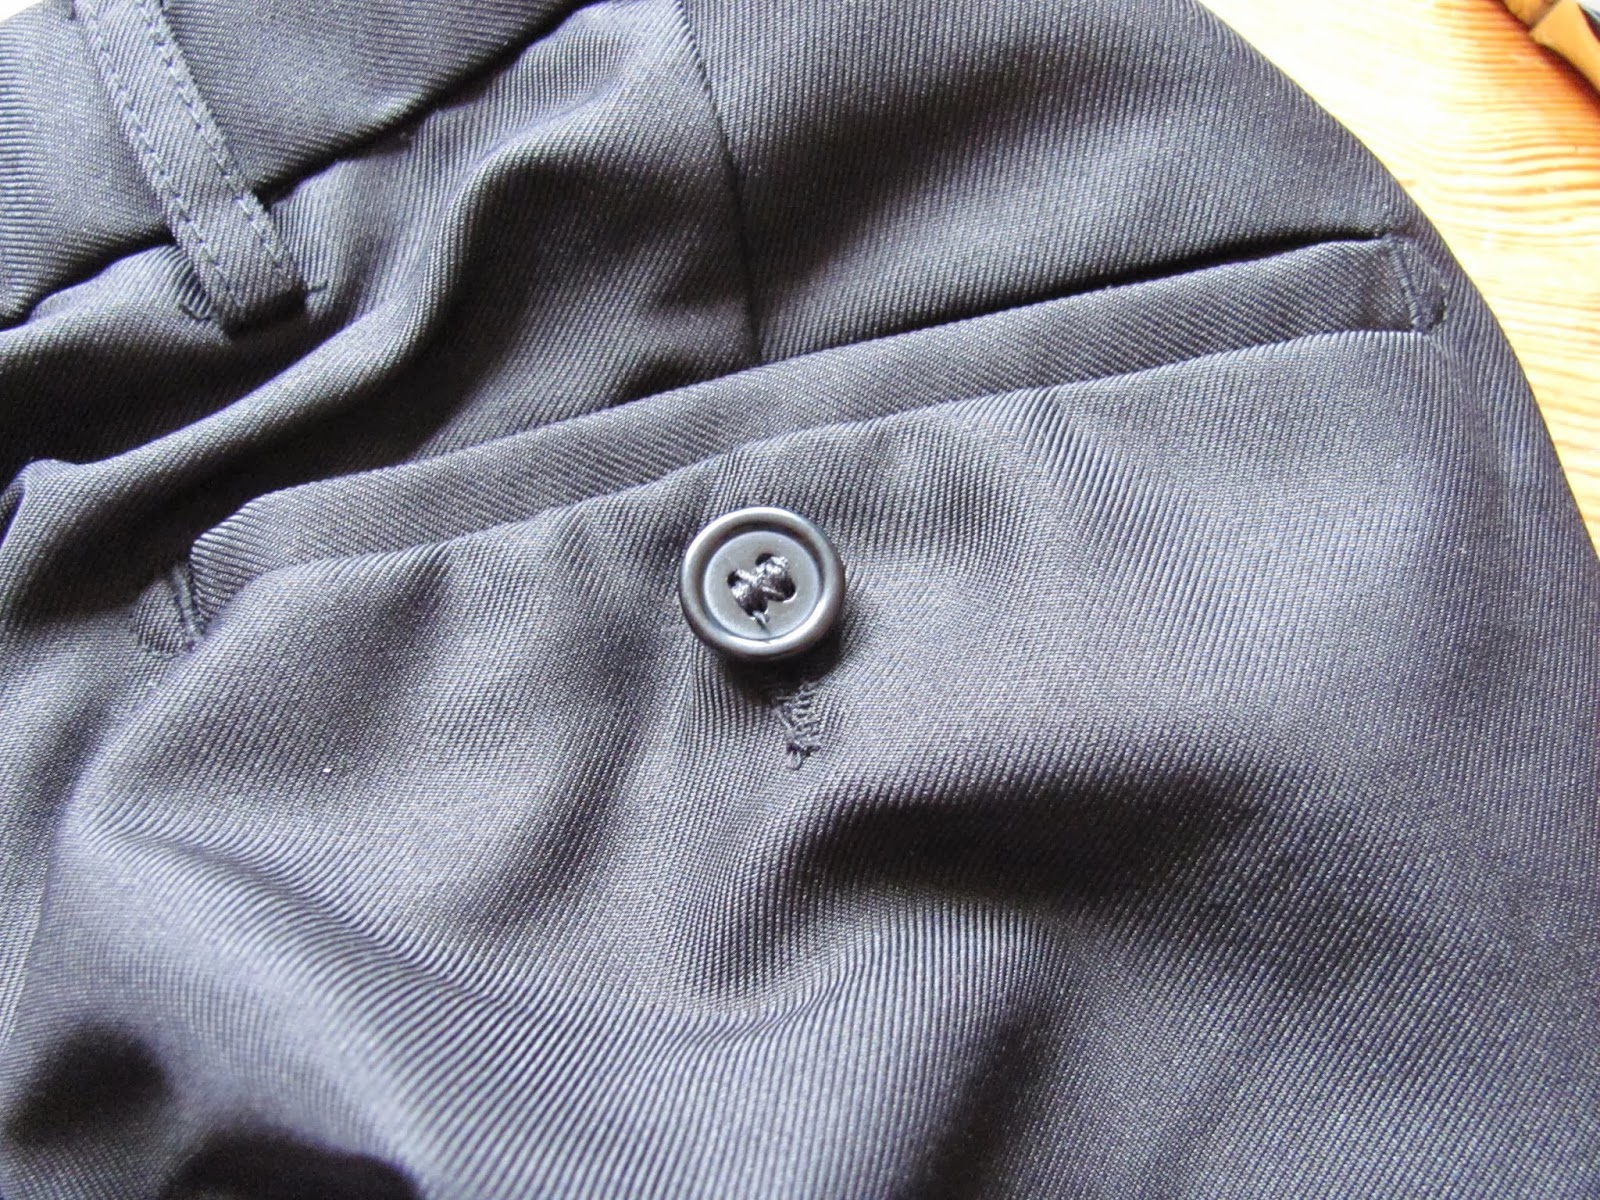 A black back pocket button is fully repaired